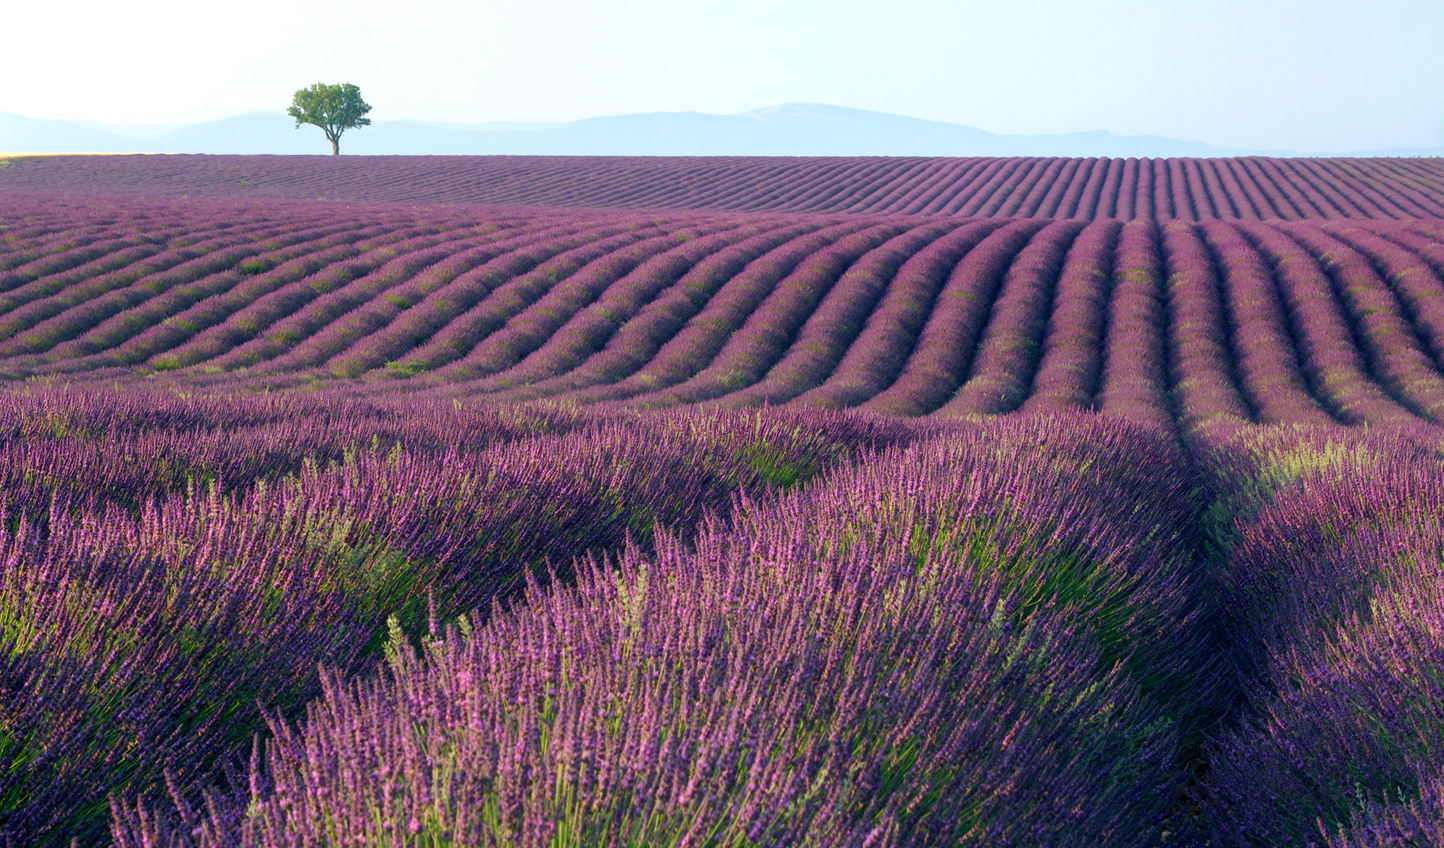 Stroll through fields of lavender